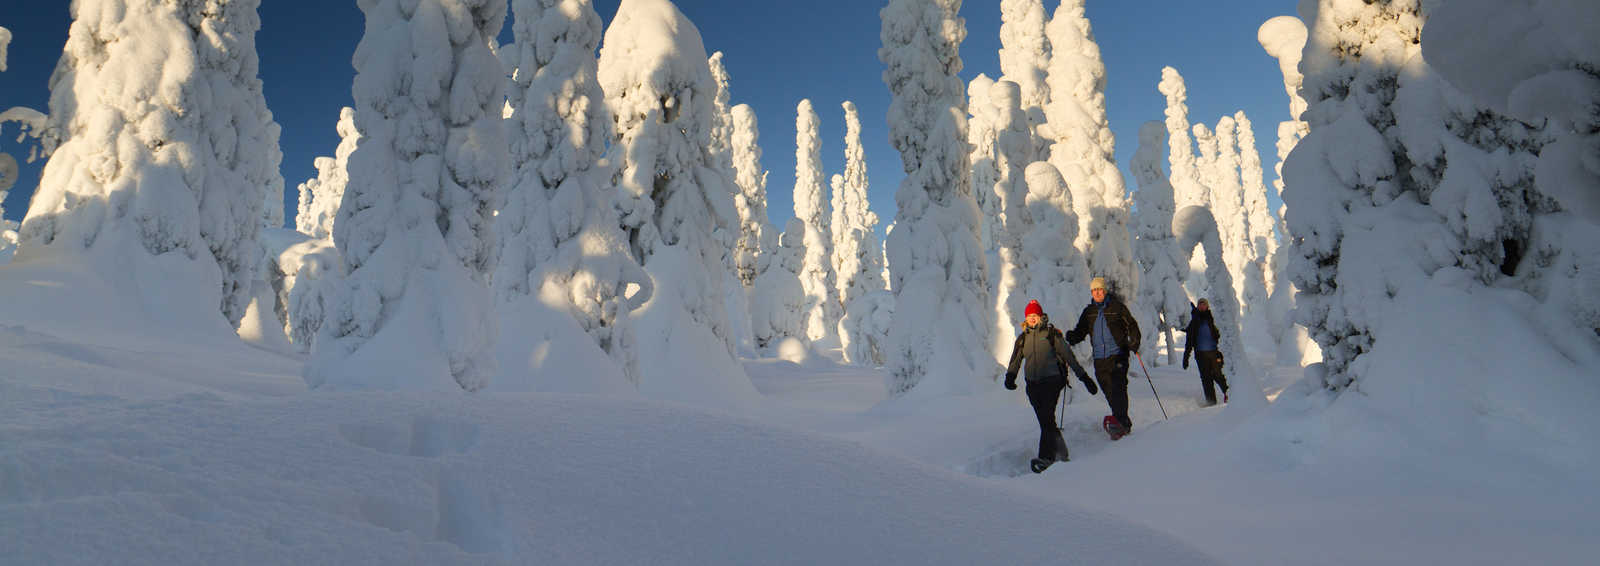 Snowshoeing in Riisitunturi National Park (photo by Erkki Ollila).